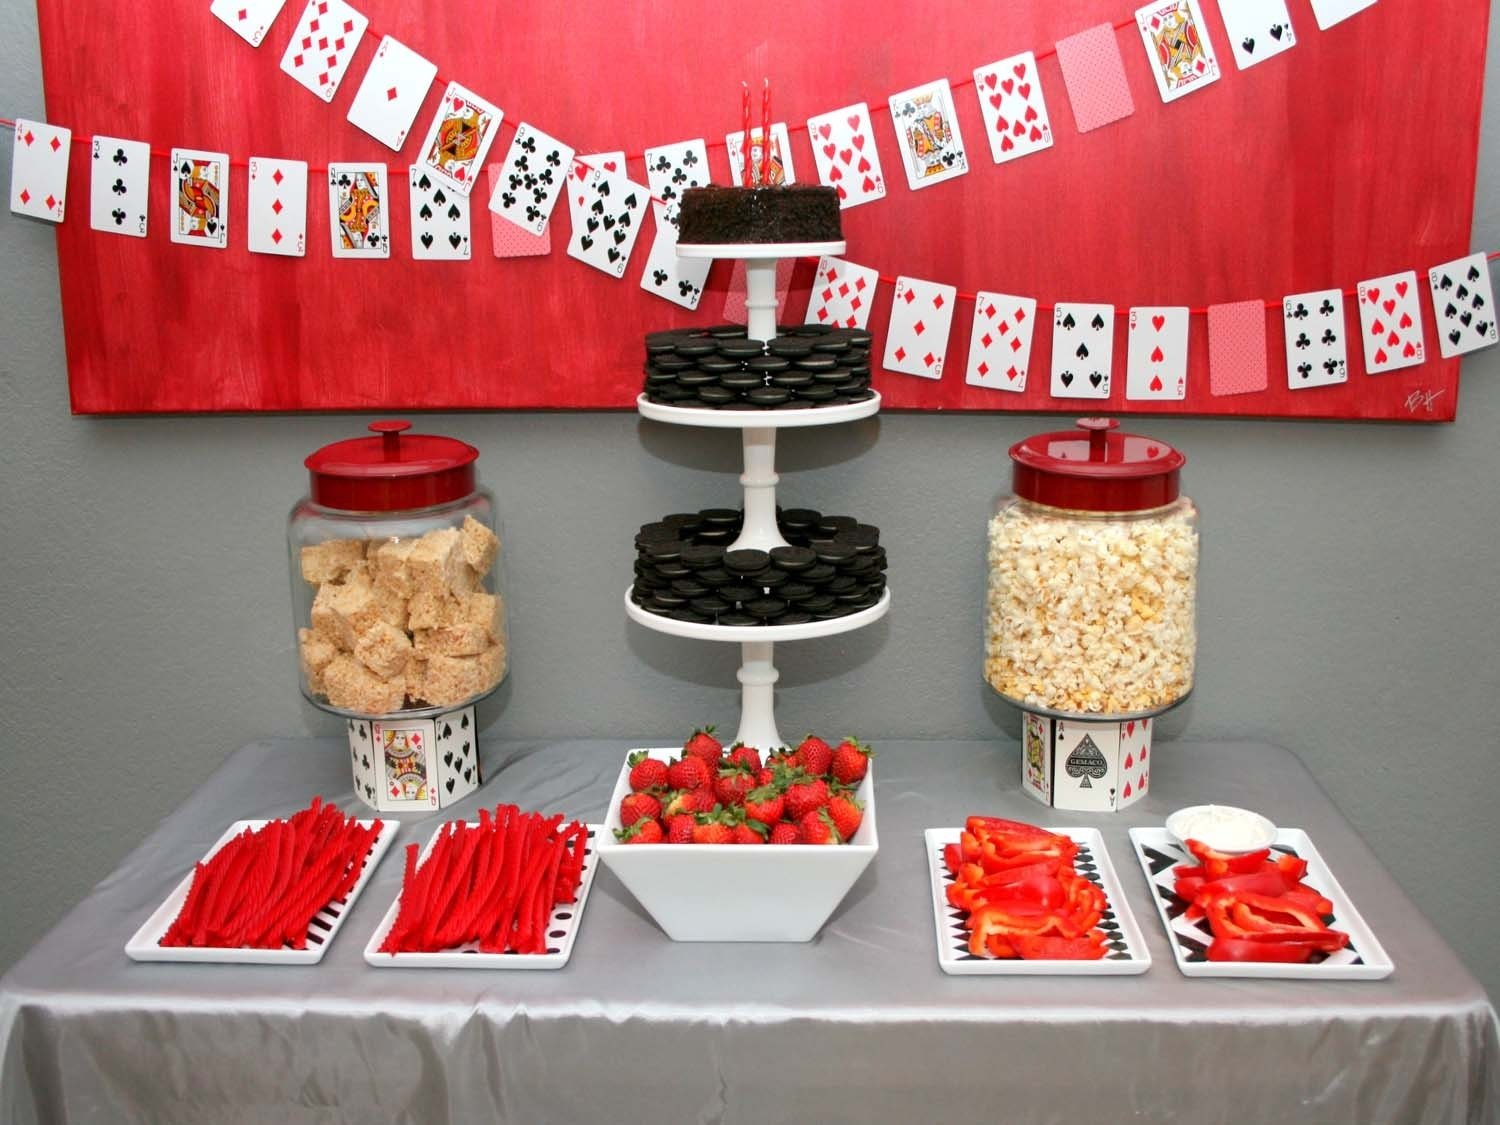 10 Most Recommended Ideas For A Retirement Party retirement party theme ideas and tips retirement party decorations 2020